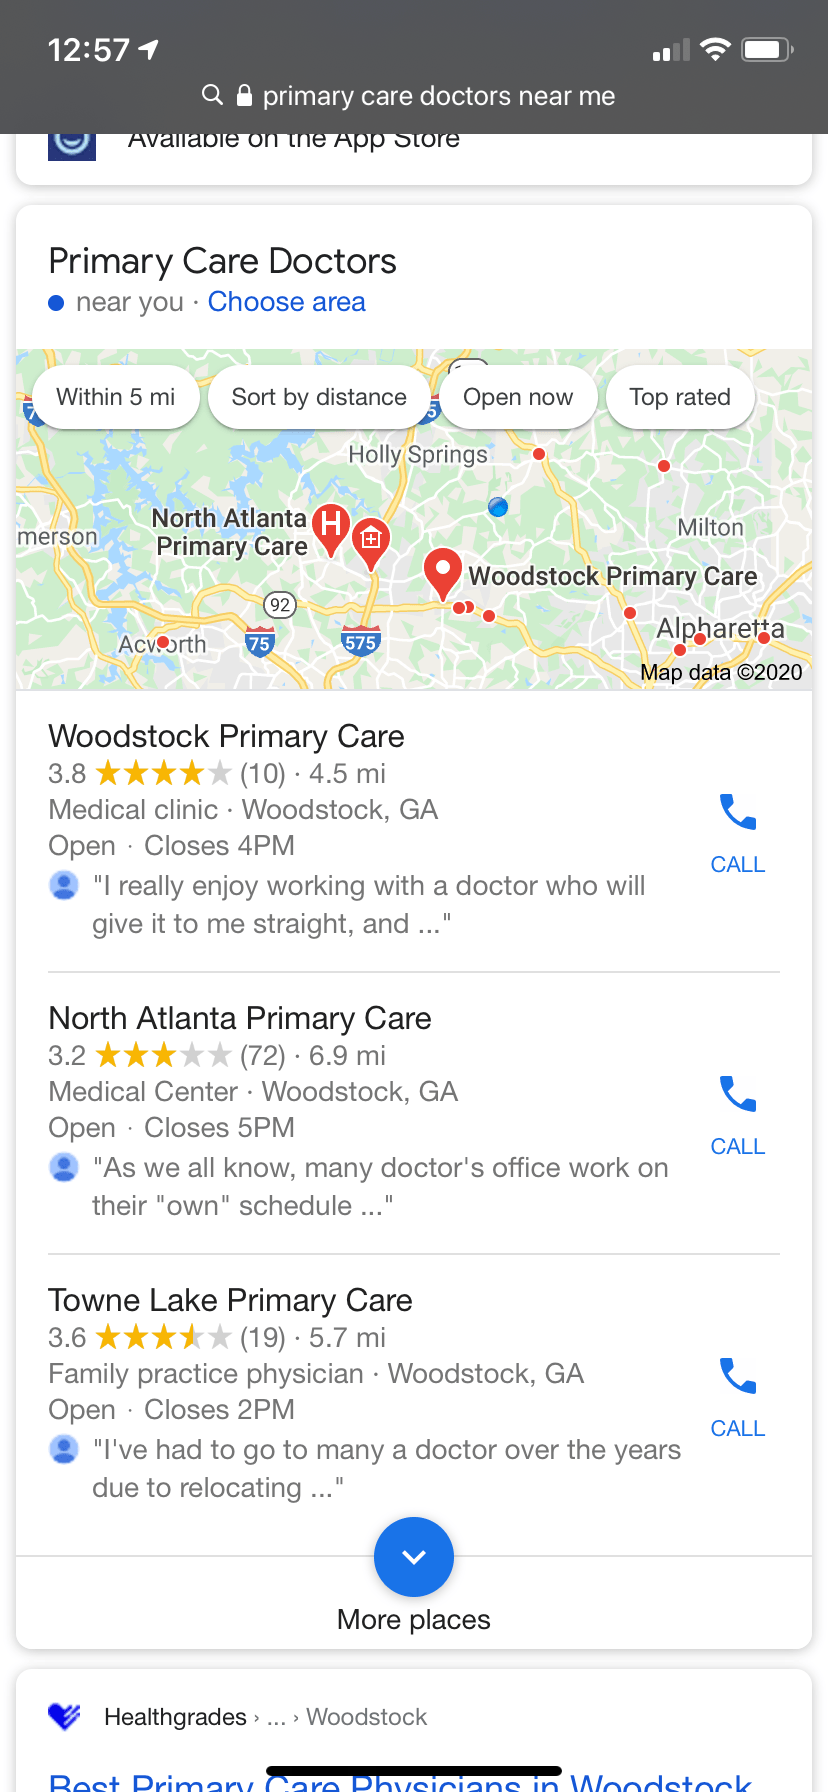 Google Maps Results for Primary Care Doctors Near Me